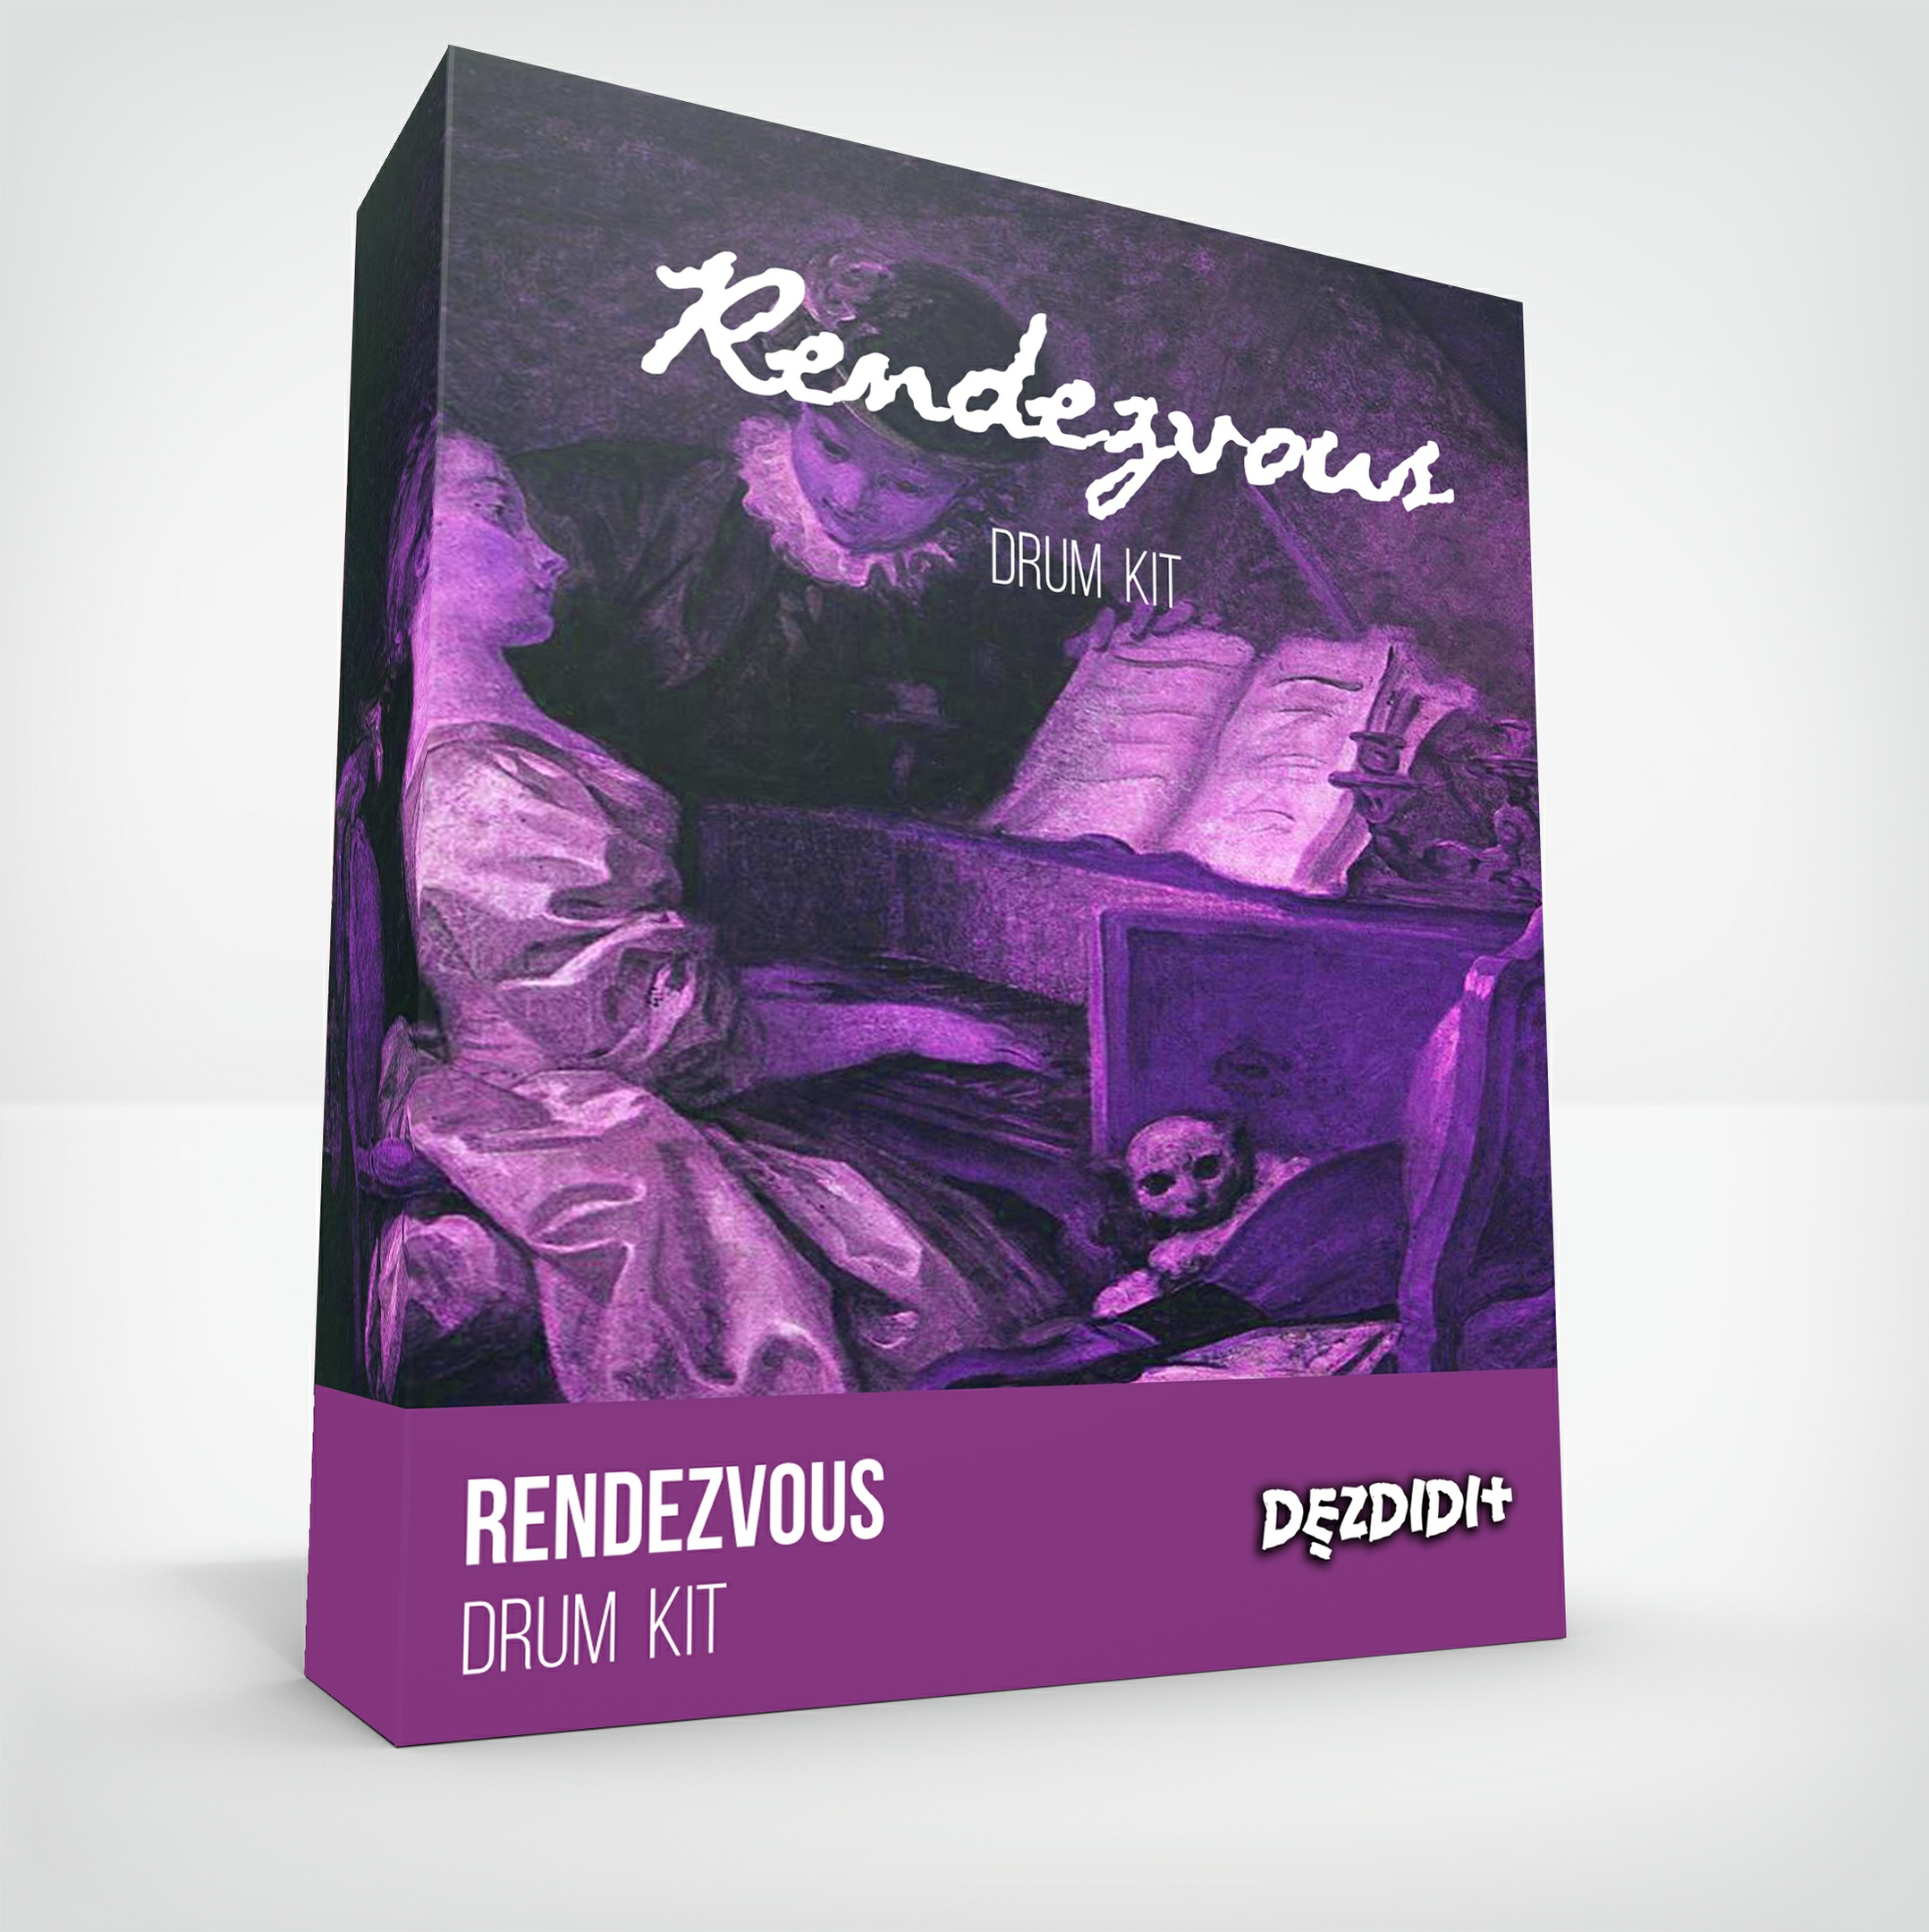 DezDidIt Rendezvous Drum Kit